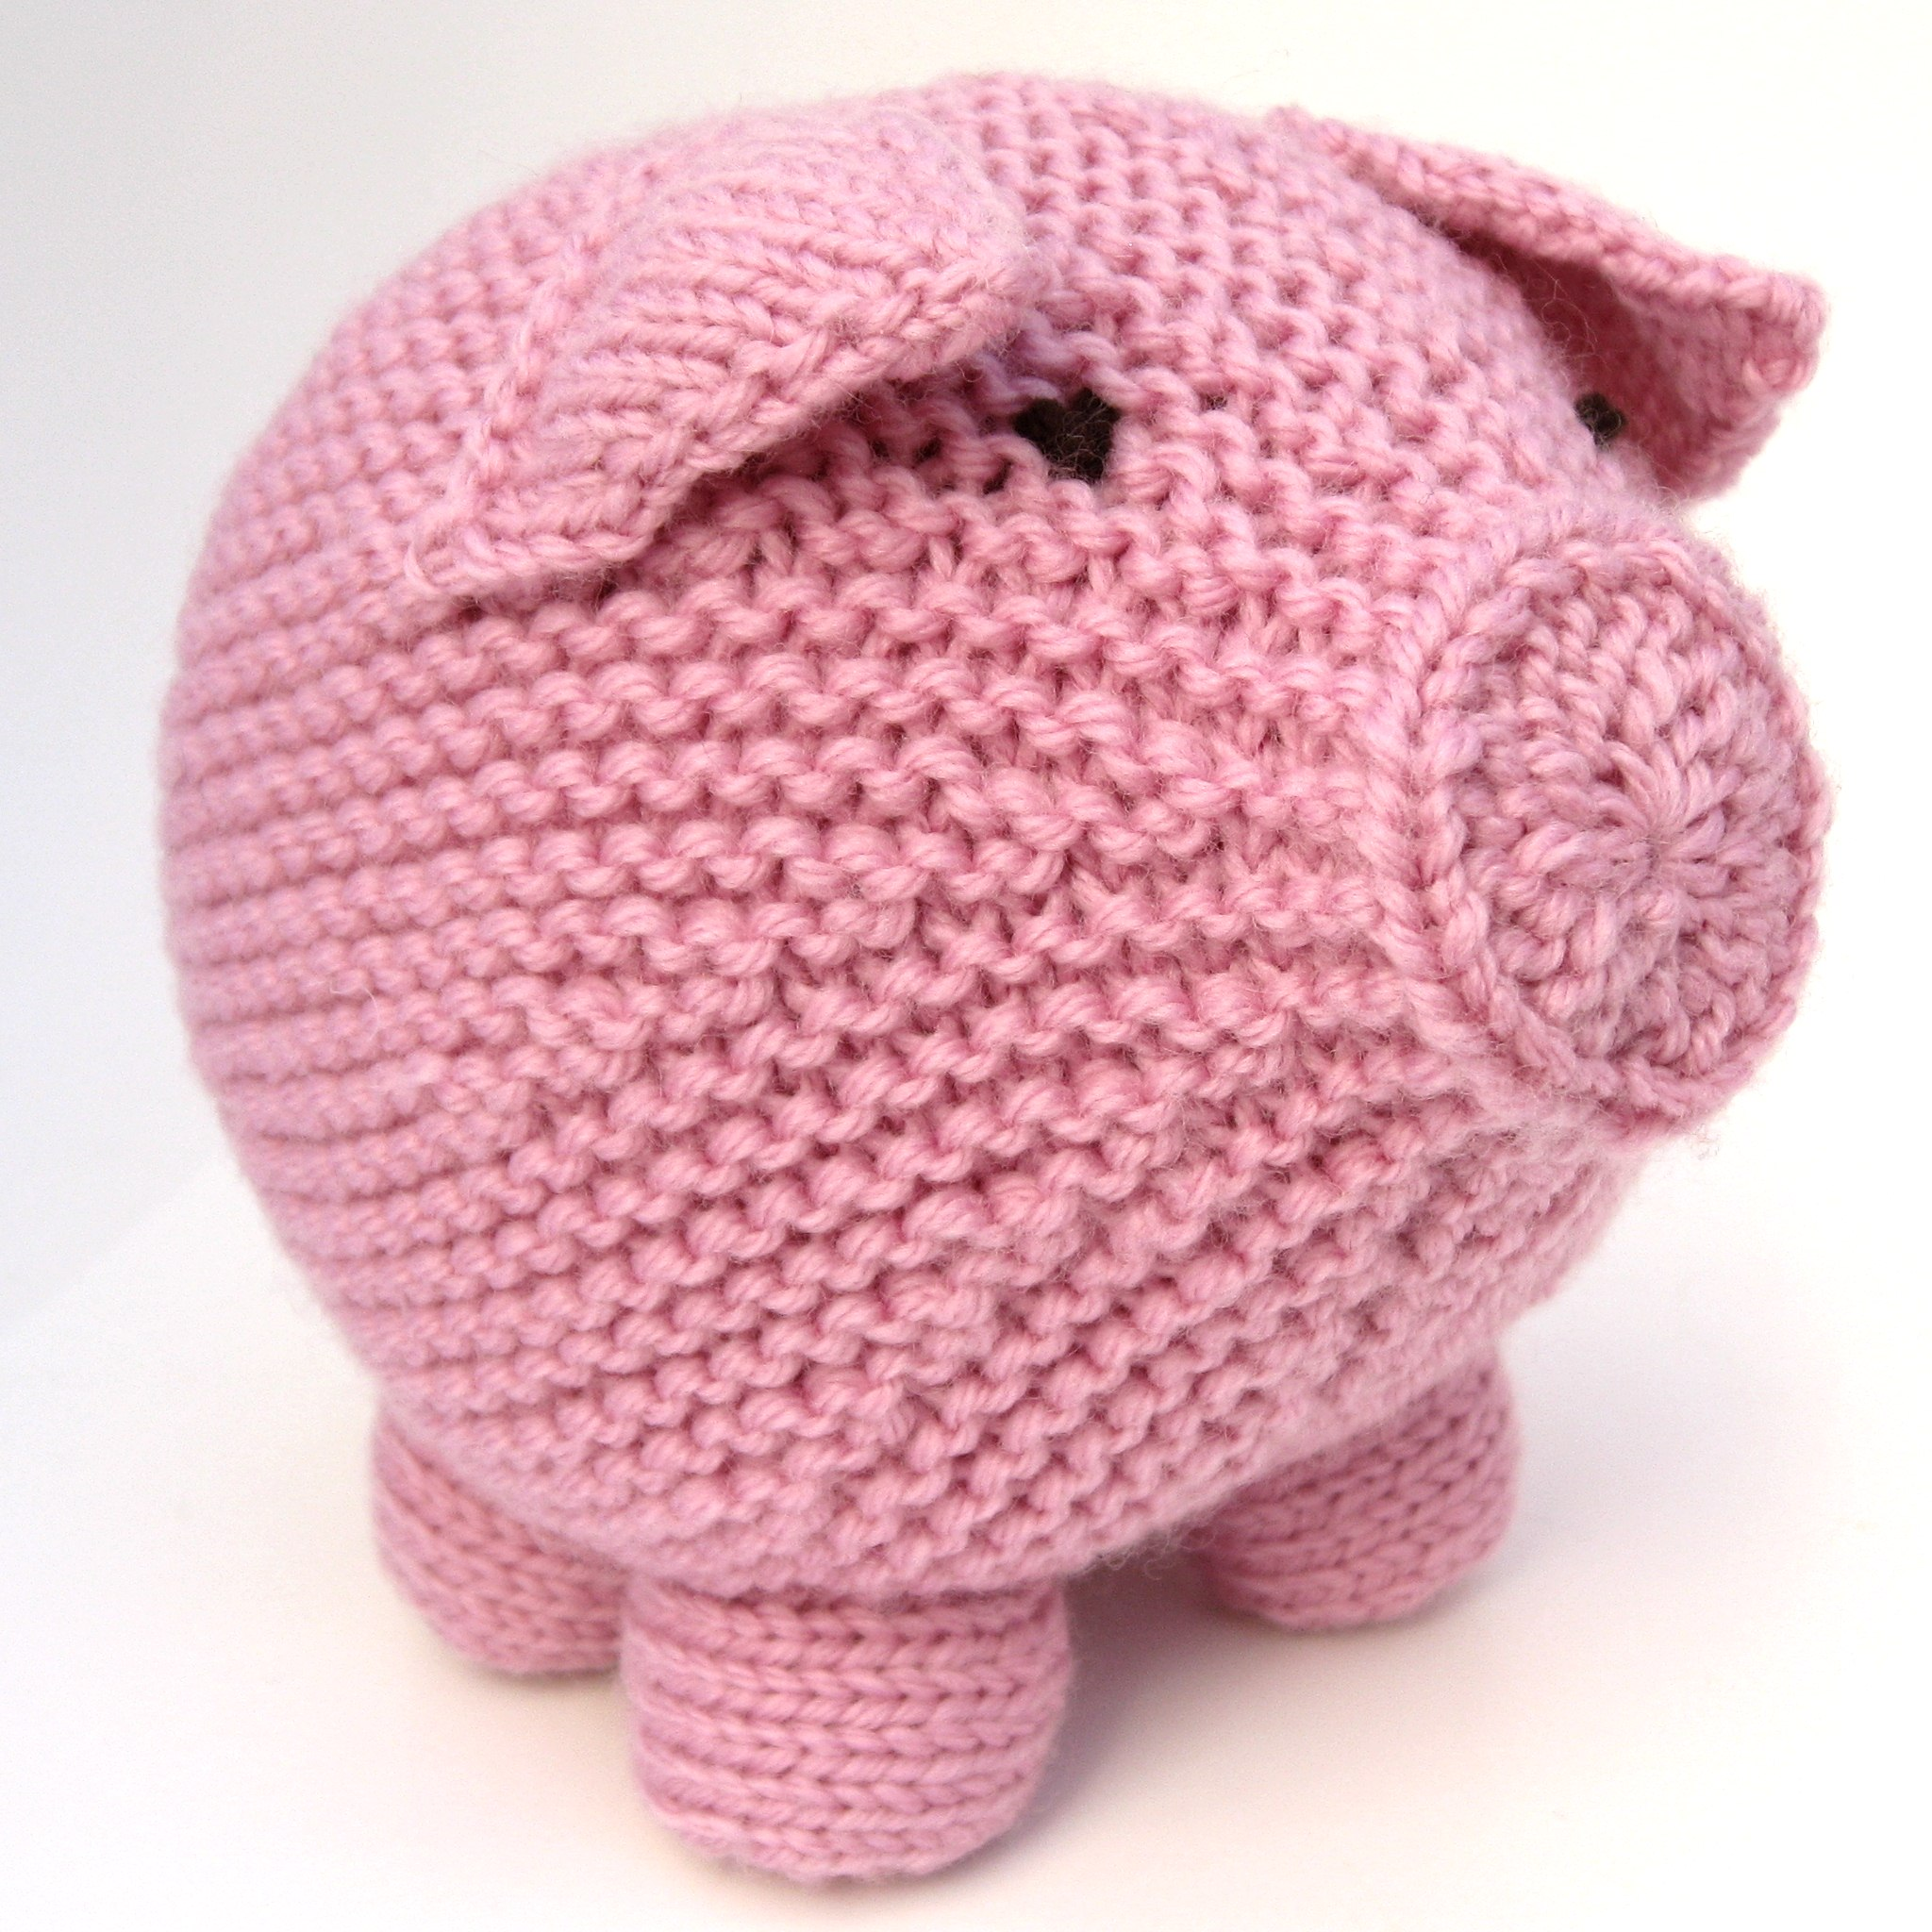 Free Toy Knitting Patterns Only : Round Pig Hints and Tips